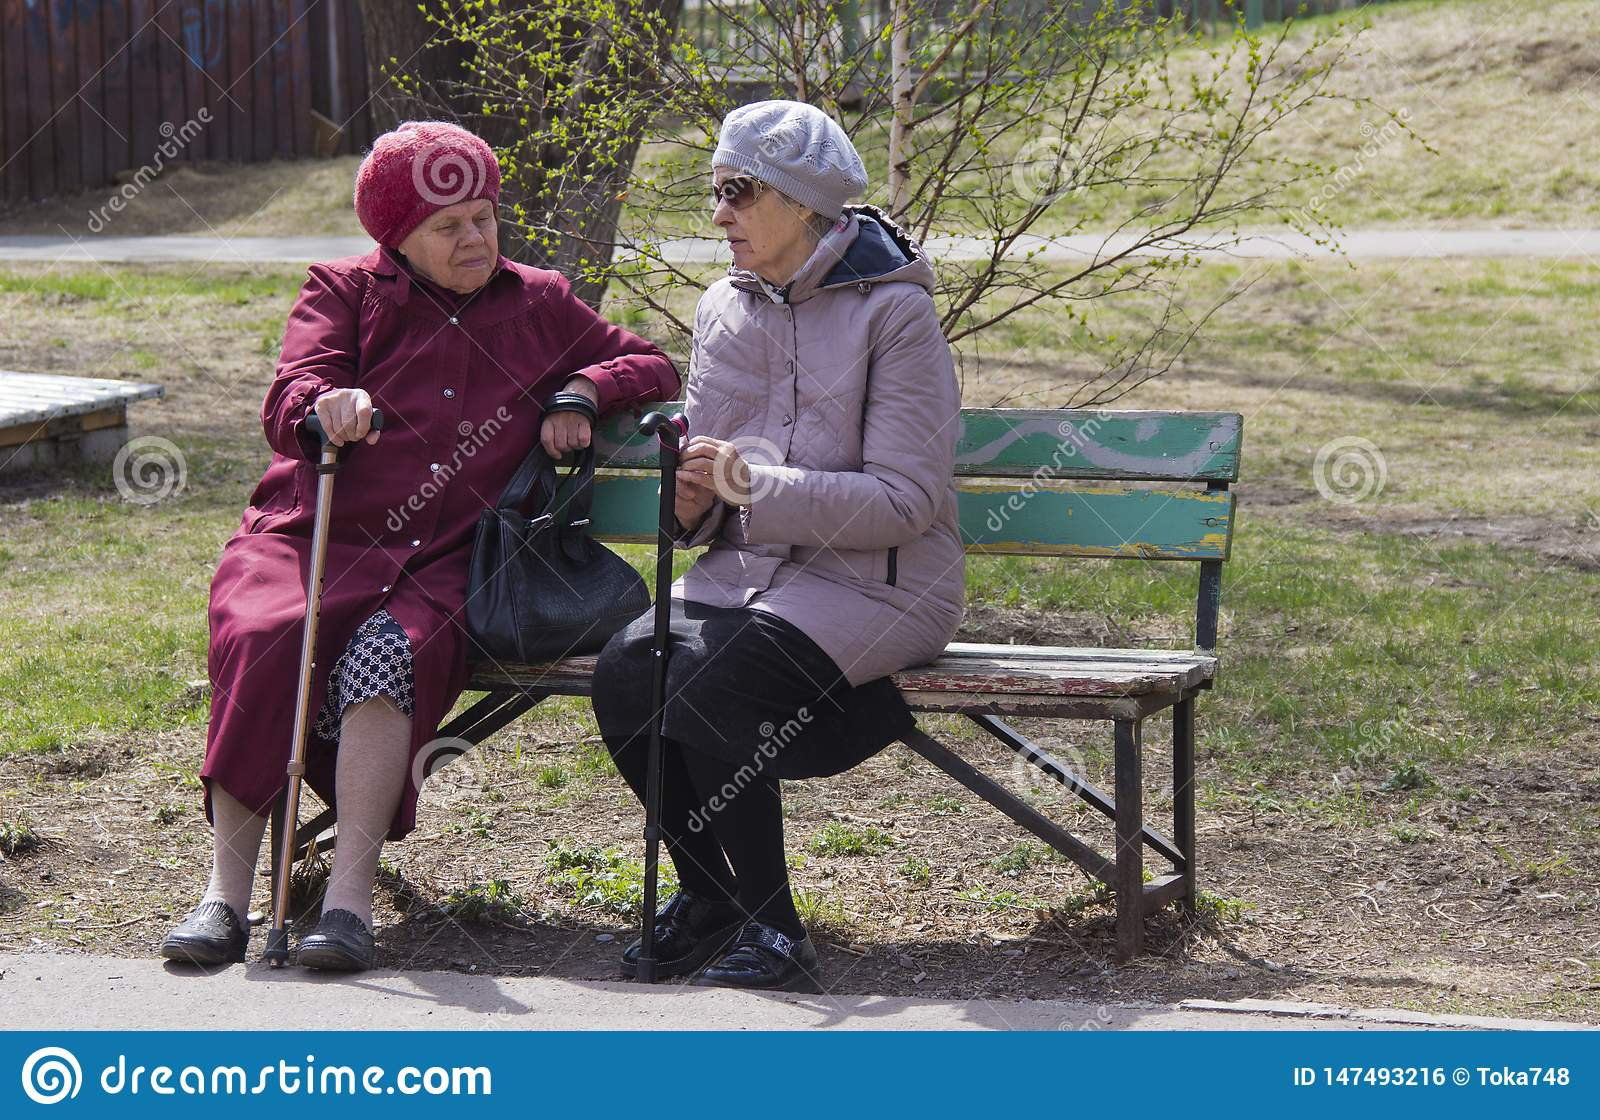 Women of retirement age sit on a bench and discuss the news